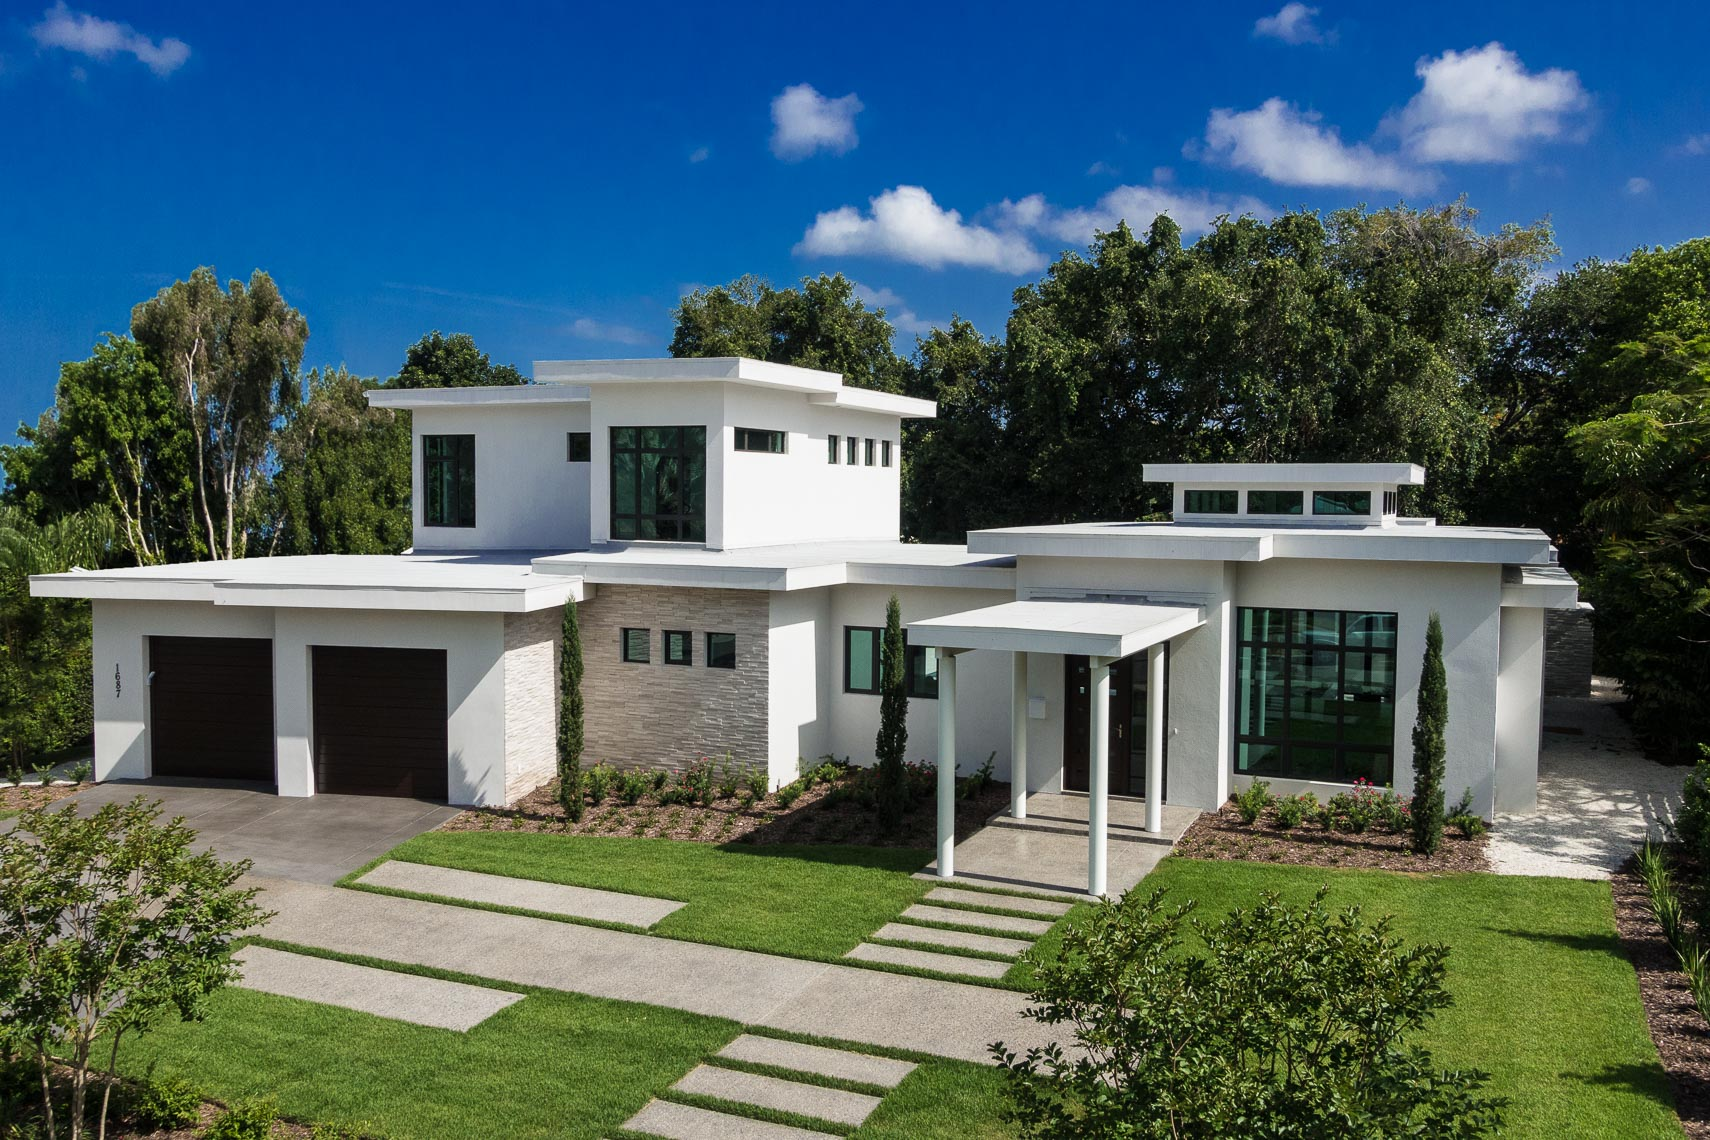 Aerial Custom Home - Mark Borosch Photography - Sarasota, FL